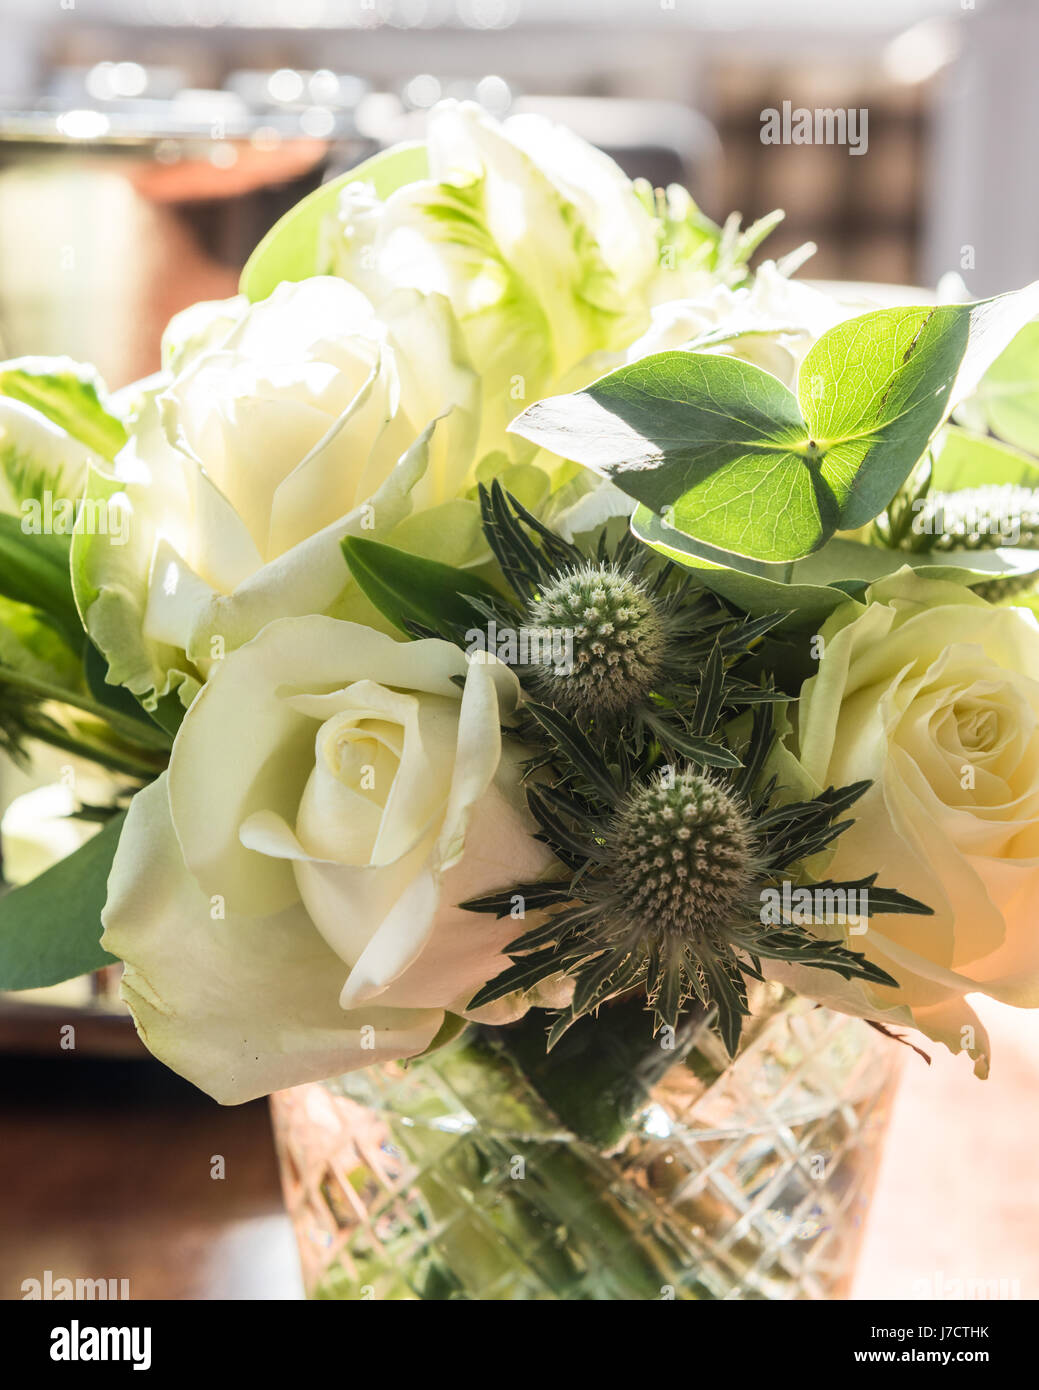 A posey of white roses and thistles in glass vase - Stock Image